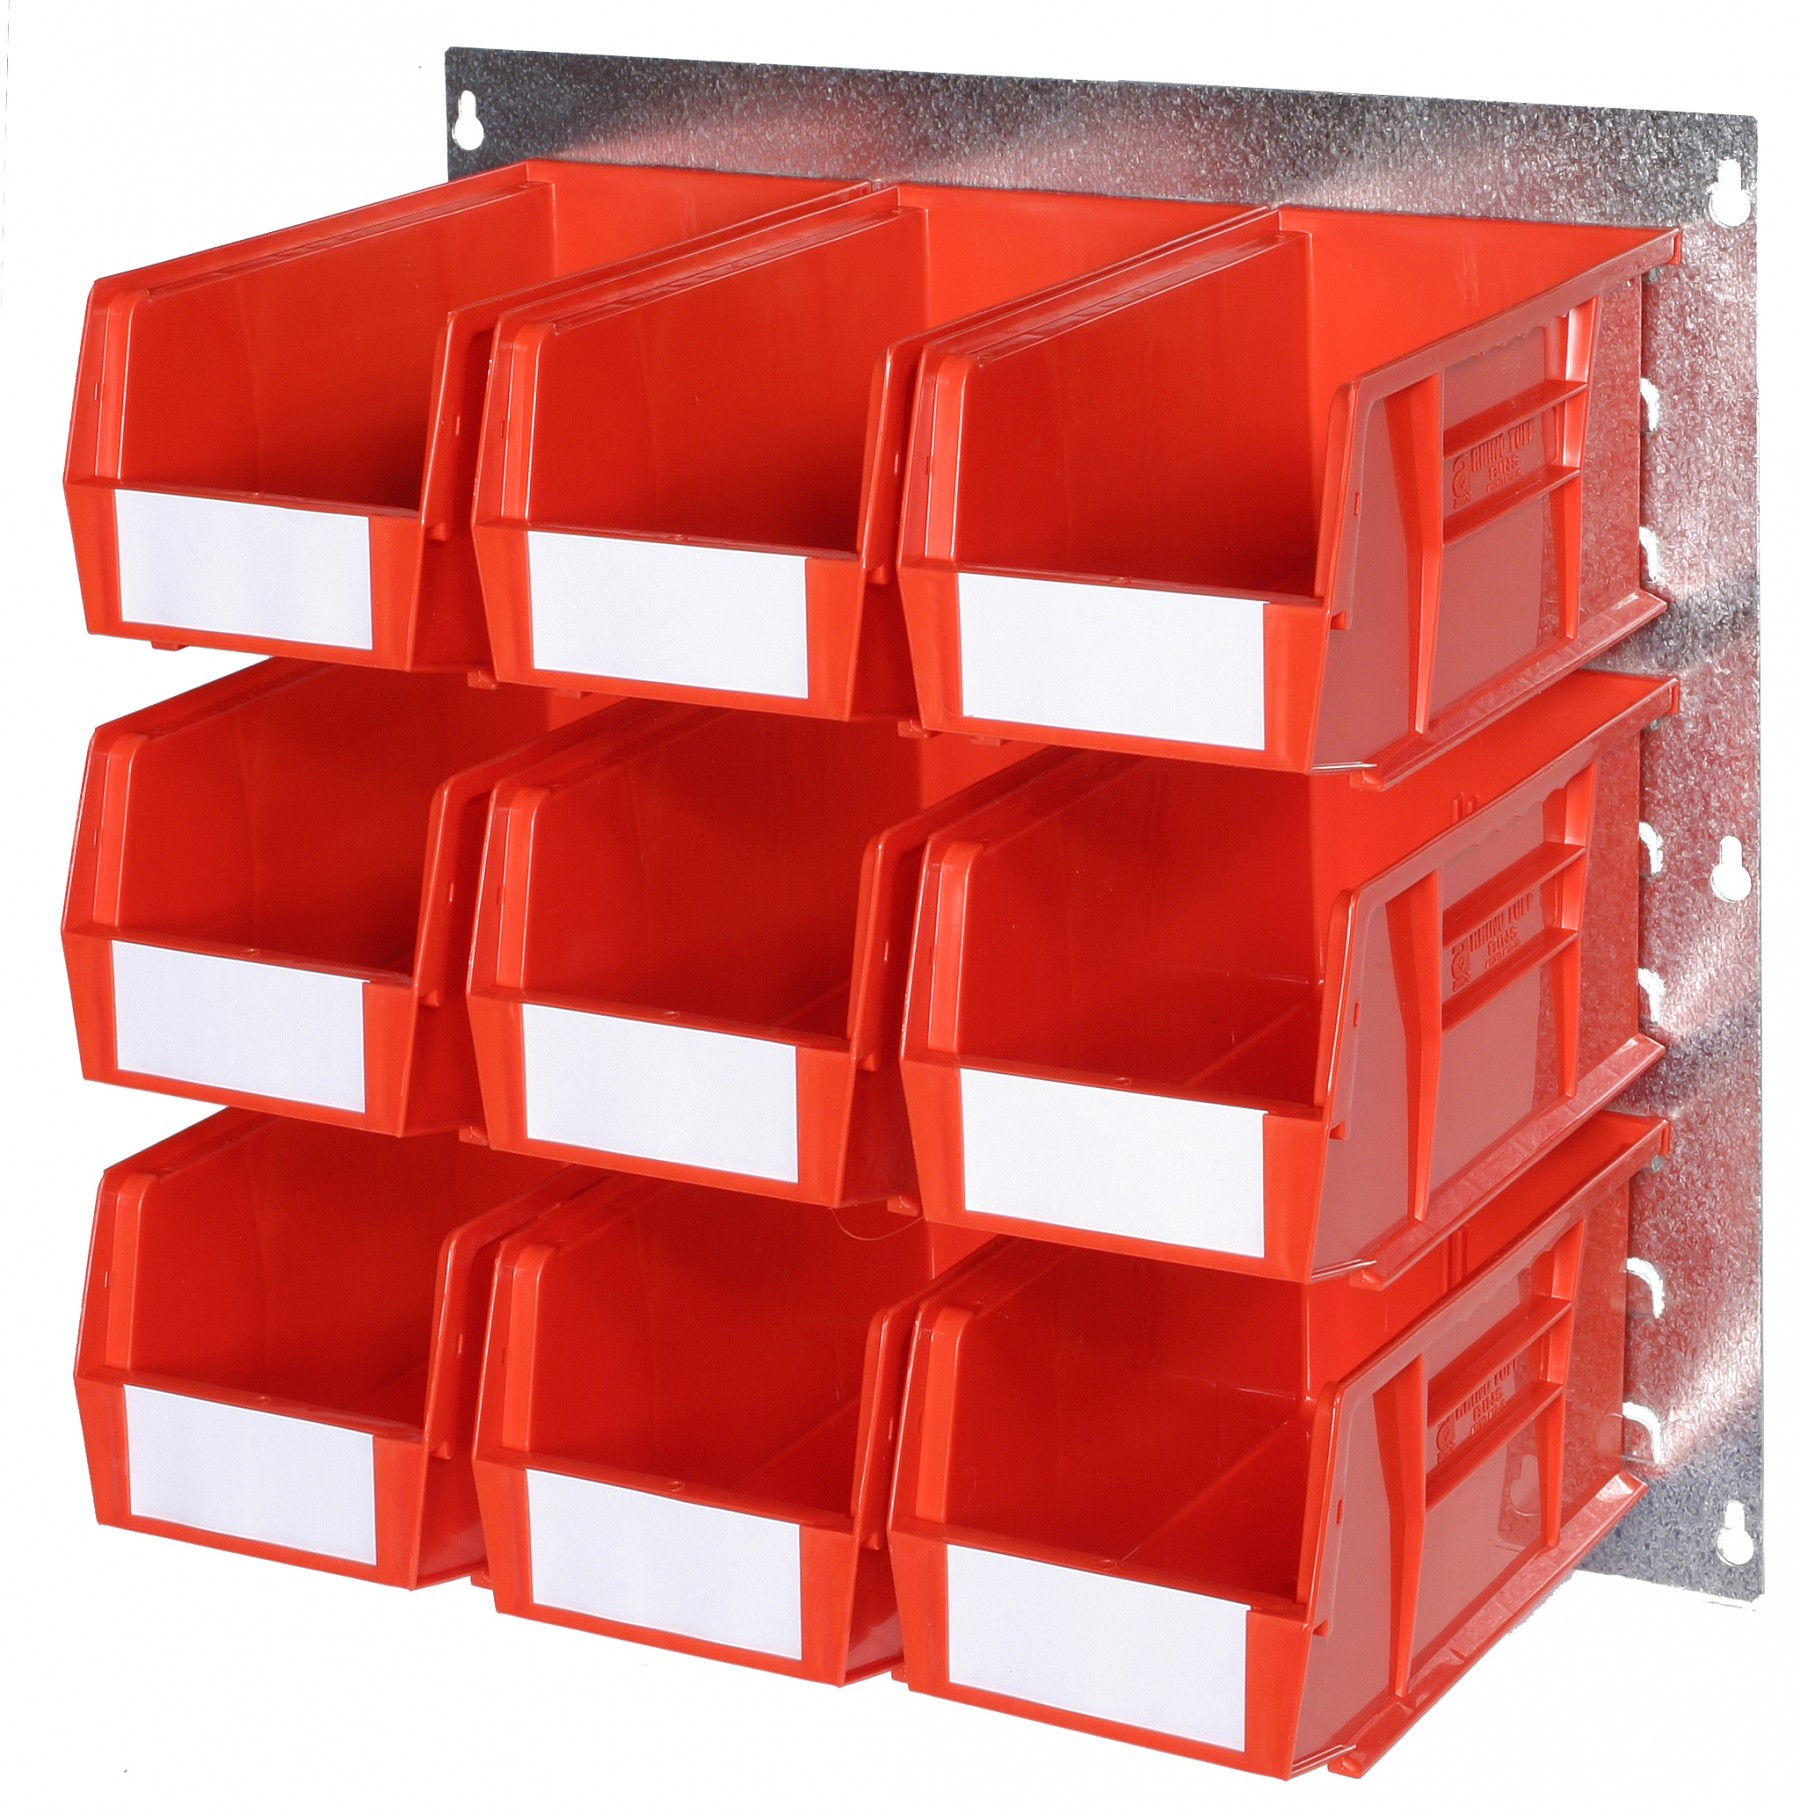 WALL LOUVRE PANELS WITH PLASTIC BINS (Q)